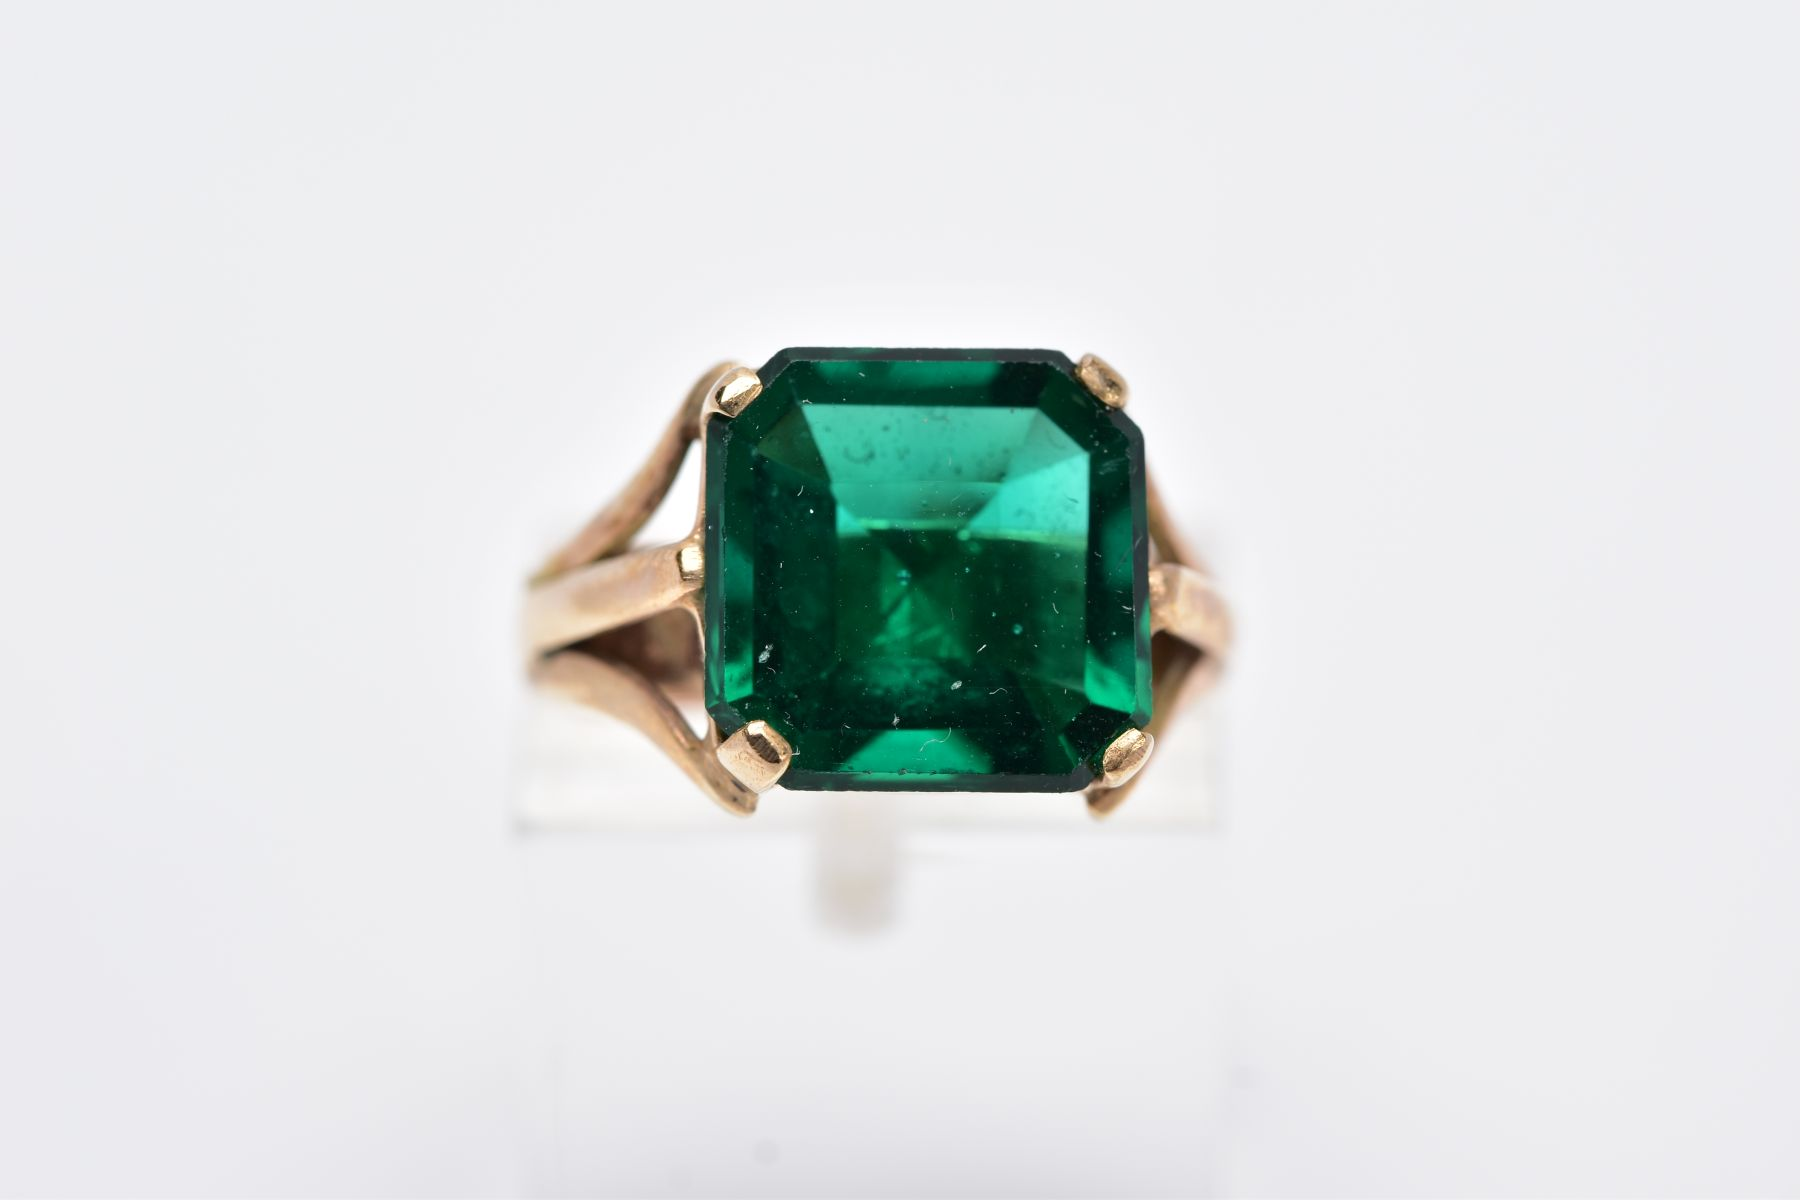 AN EARLY 20TH CENTURY 9CT GOLD SINGLE STONE GREEN PASTE RING, paste stone measuring approximately - Image 5 of 5